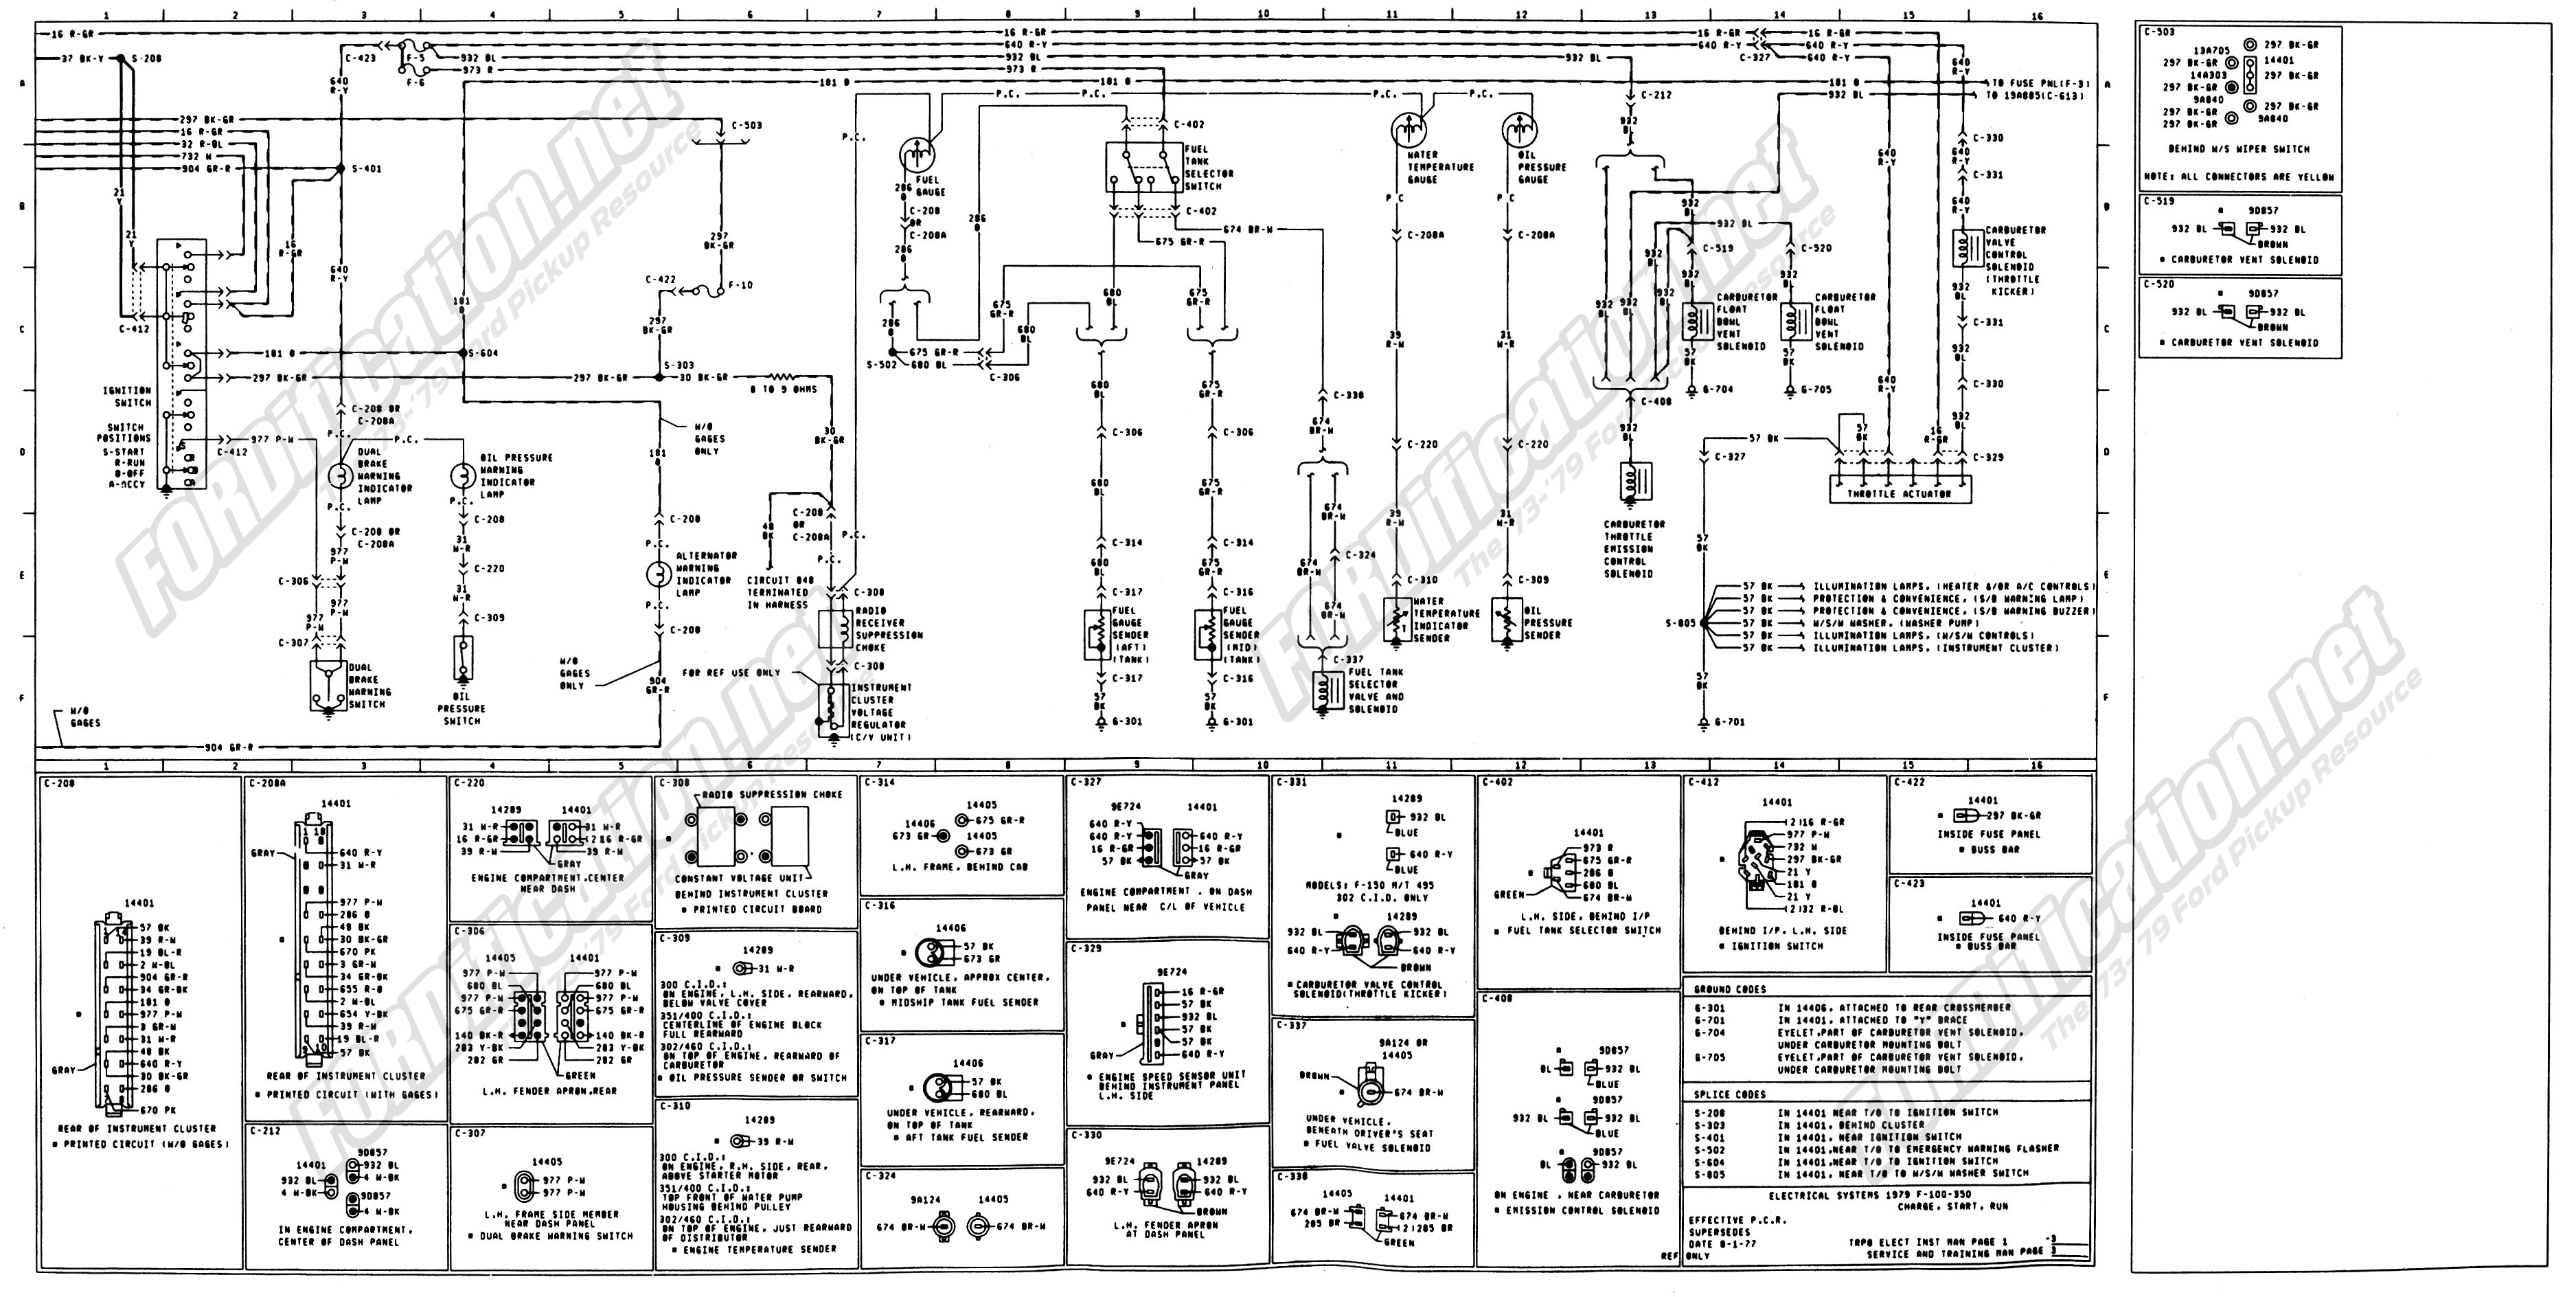 1973 1979 ford truck wiring diagrams schematics fordification net rh fordification net 1974 ford f100 radio wiring diagram 1969 Ford F100 Wiring Diagram